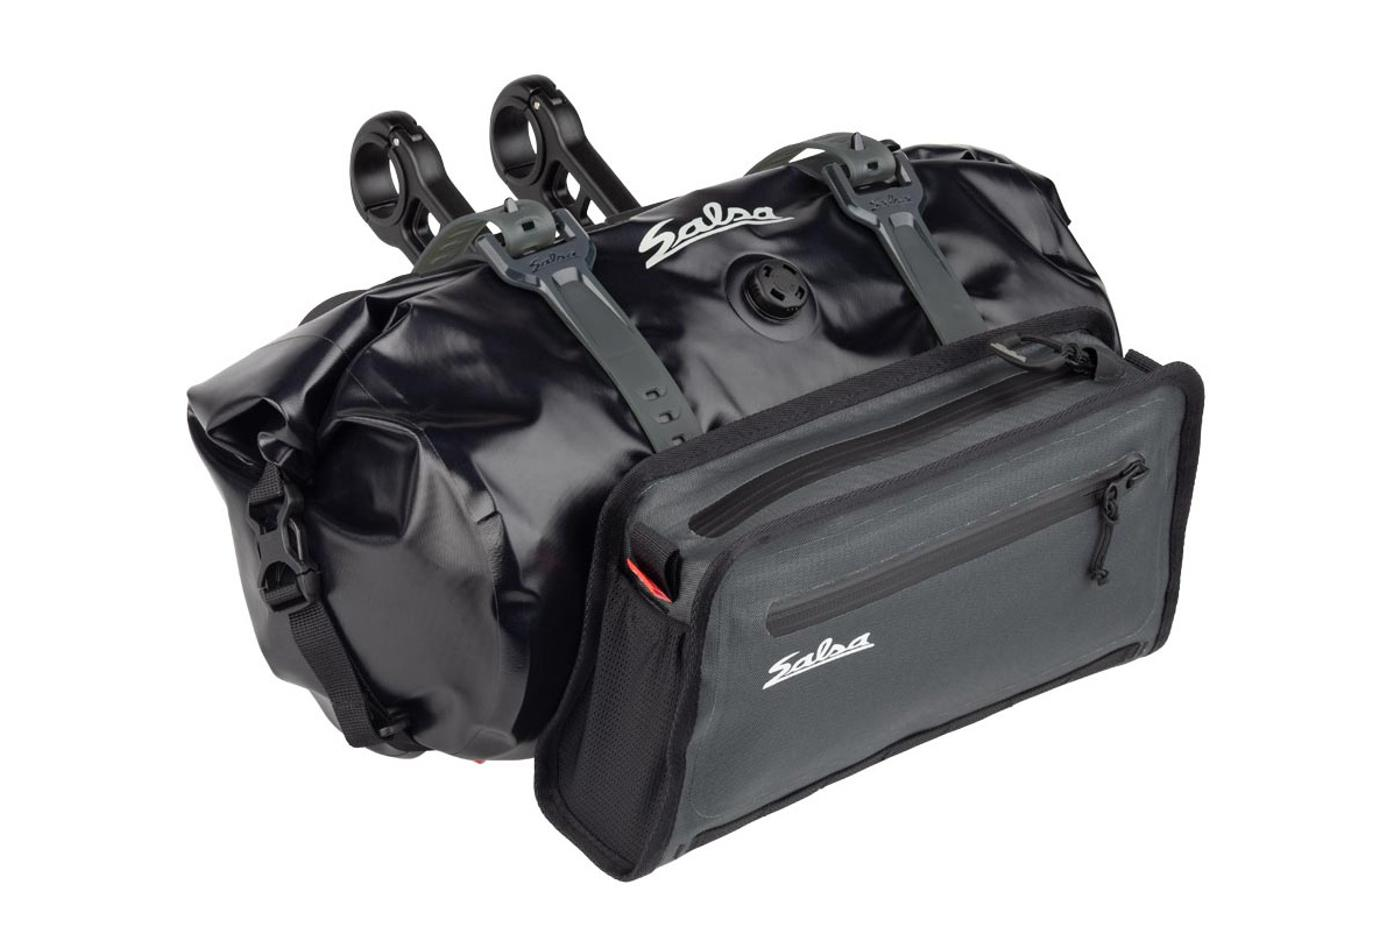 Salsa Revamps its EXP Series Anything Cradle and Bag Design